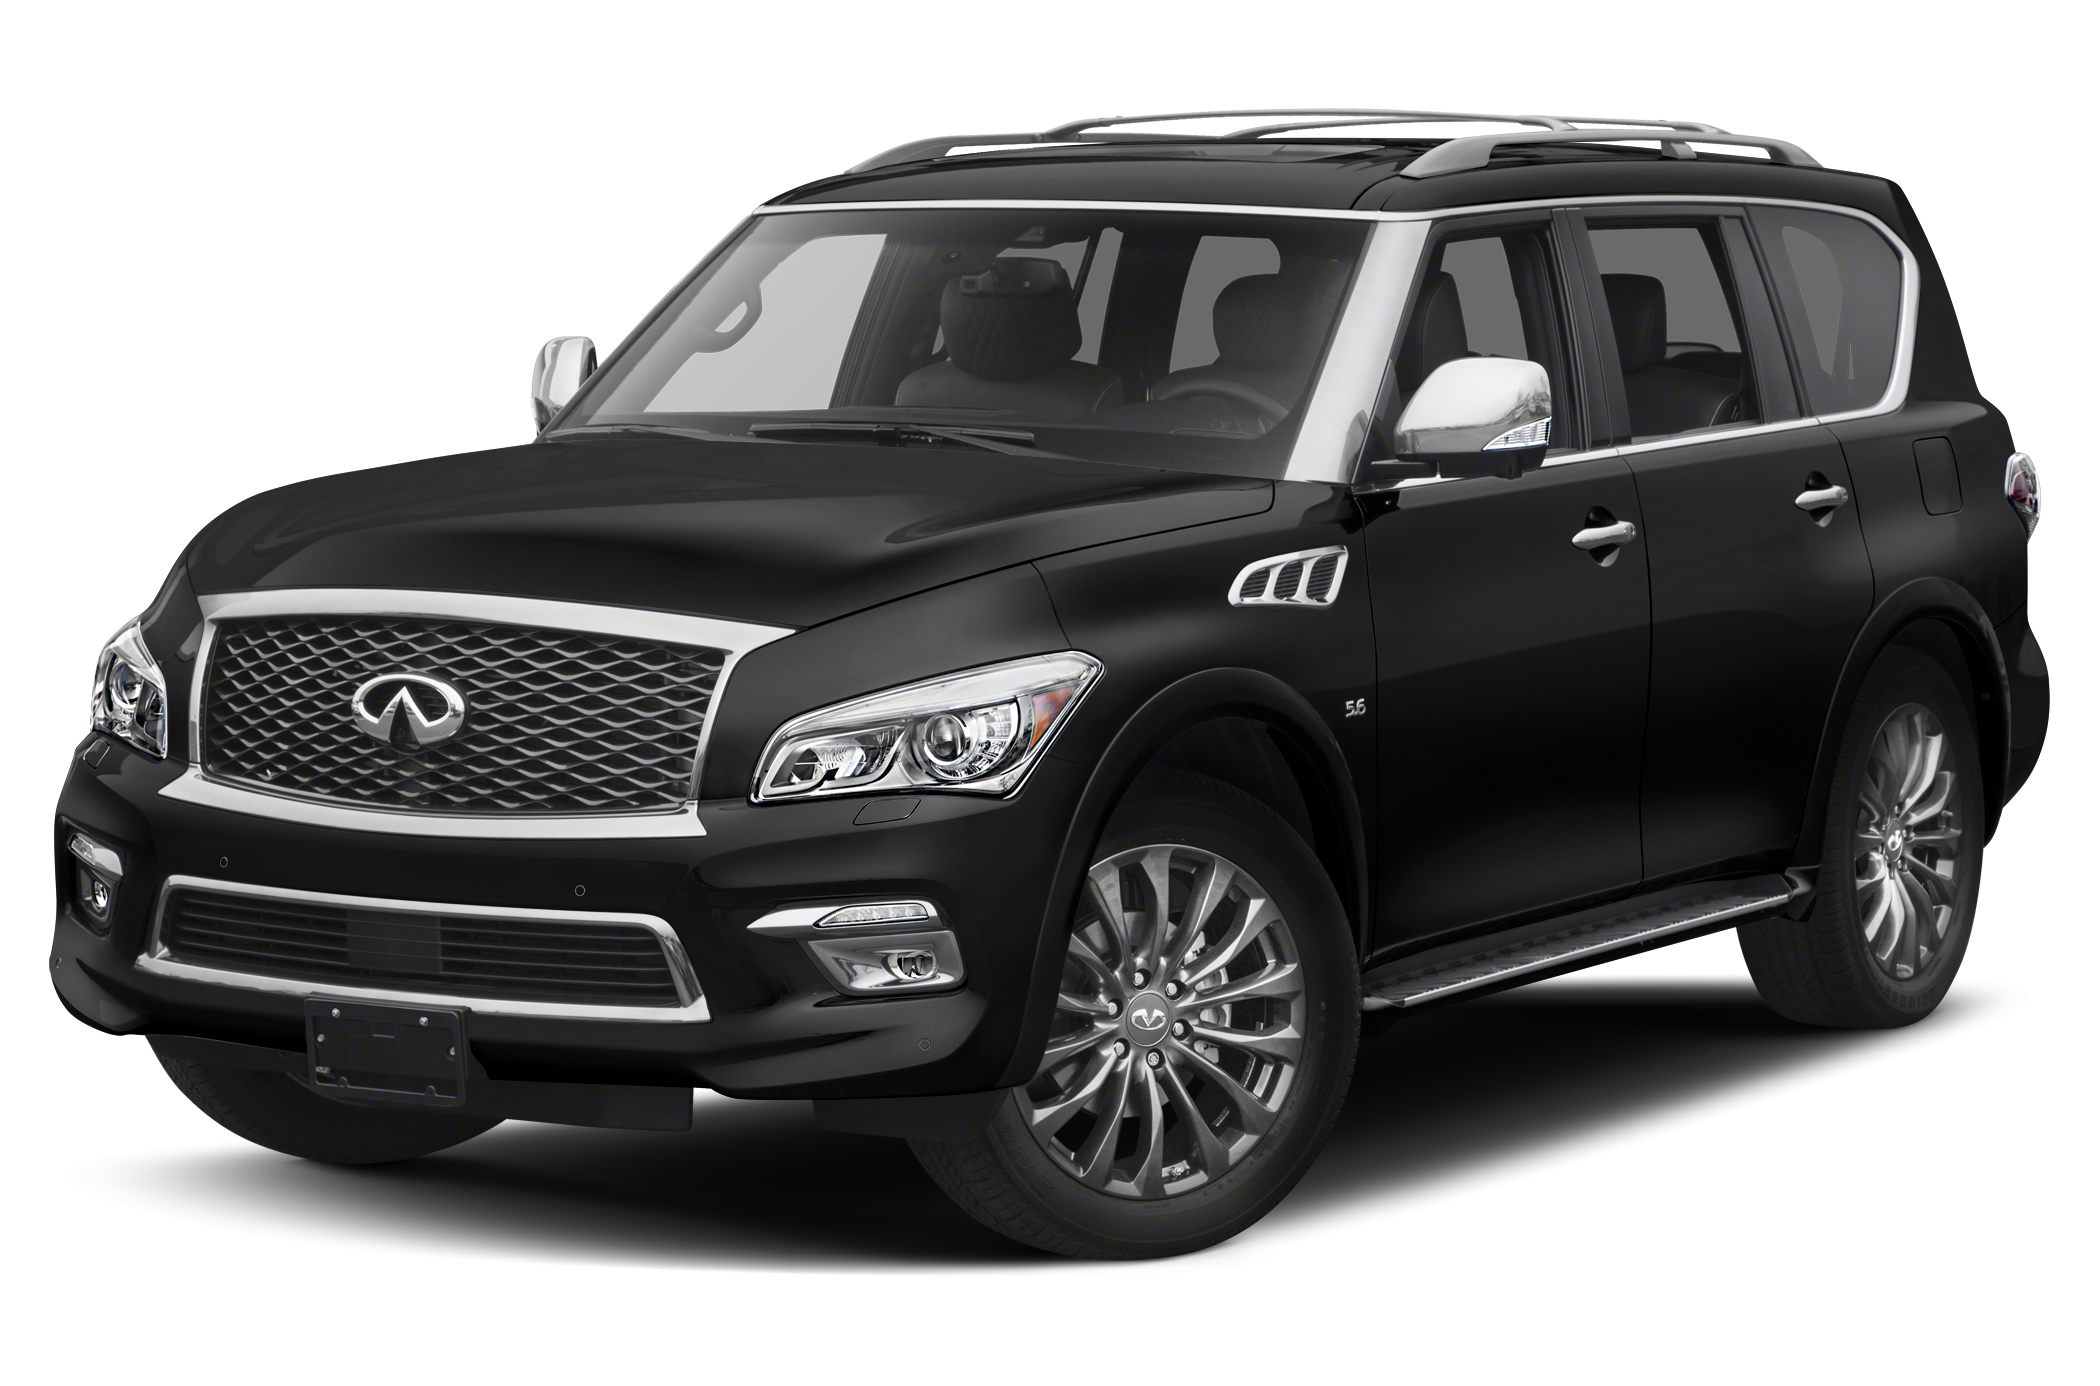 lexus launches supercharged lx 570 in middle east autoblog. Black Bedroom Furniture Sets. Home Design Ideas